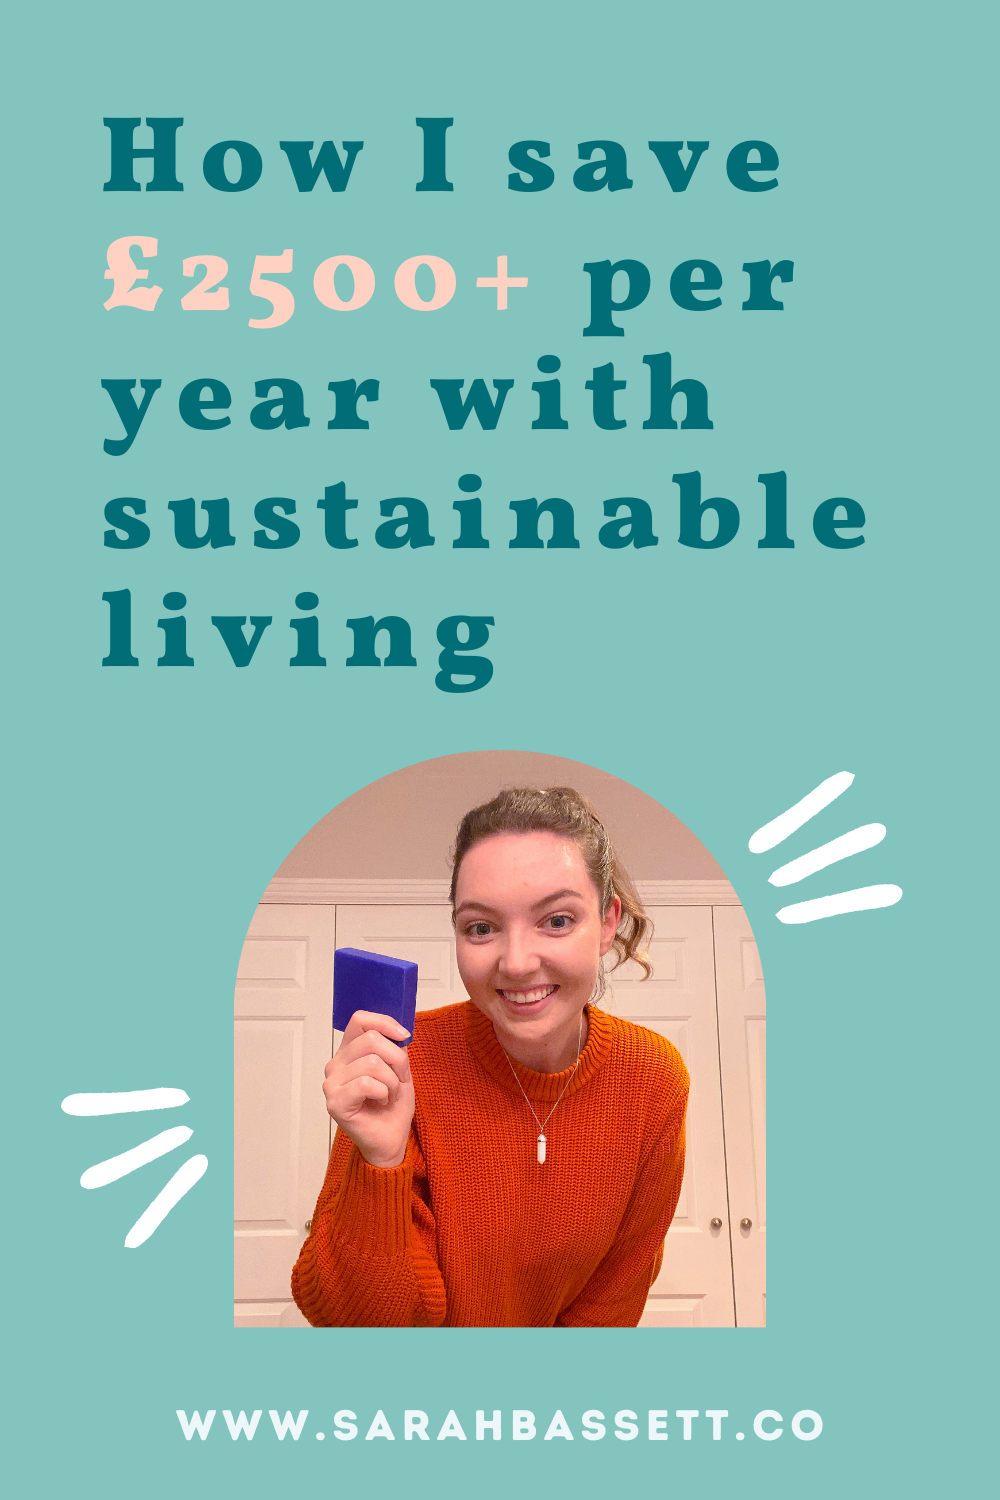 Sustainable living doesn't have to be expensive! Follow these zero waste, eco-friendly tips for green living that's budget-friendly.